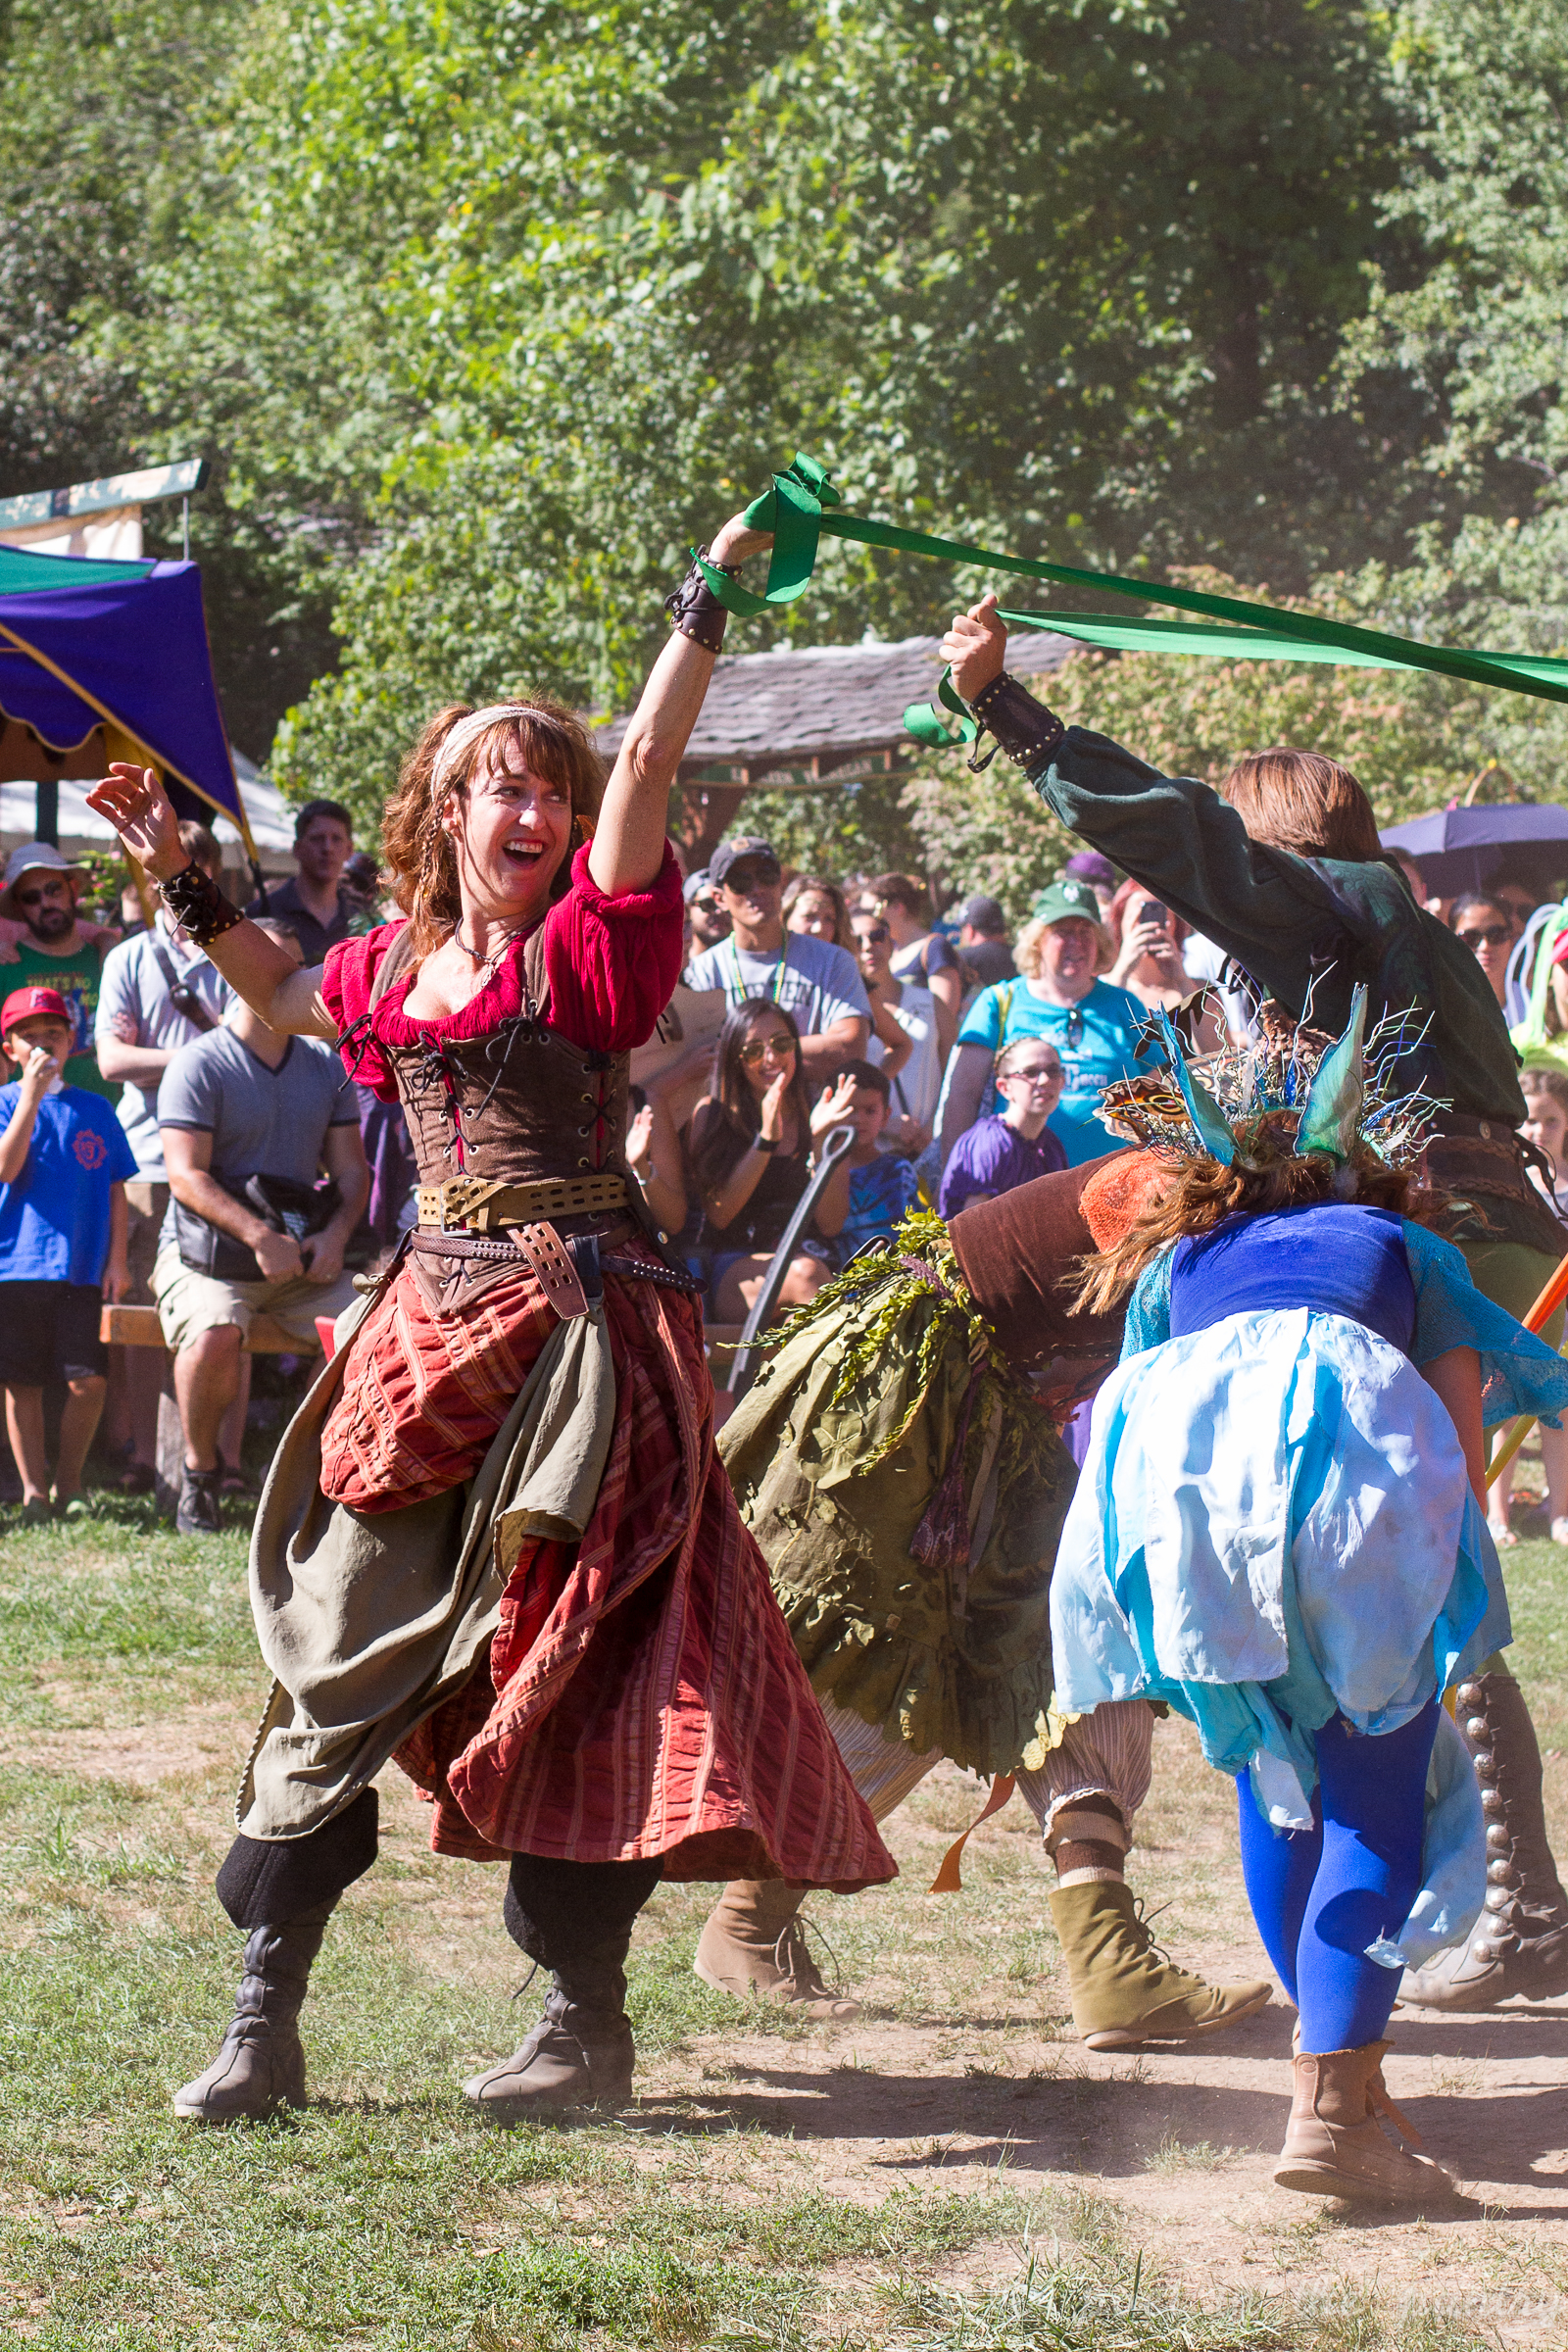 Renaissance Fairs: Travel: New York Renaissance Faire 2015